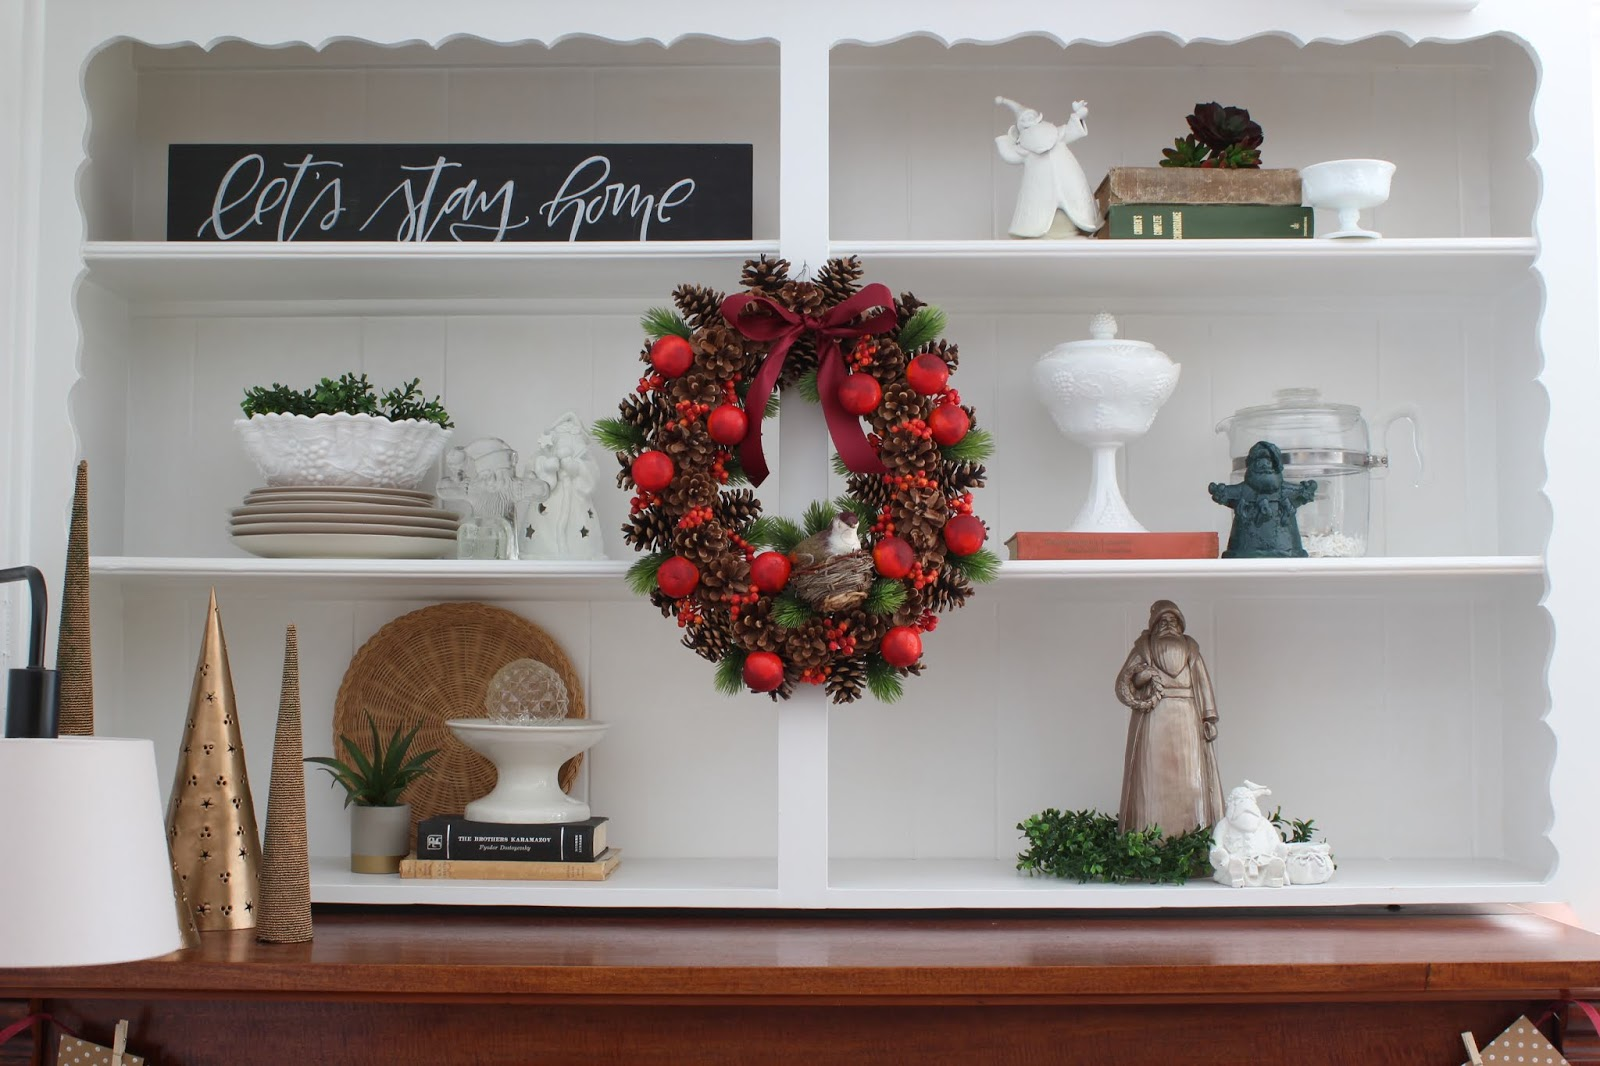 Winter Eclectic Home Tour 2018 | House Homemade